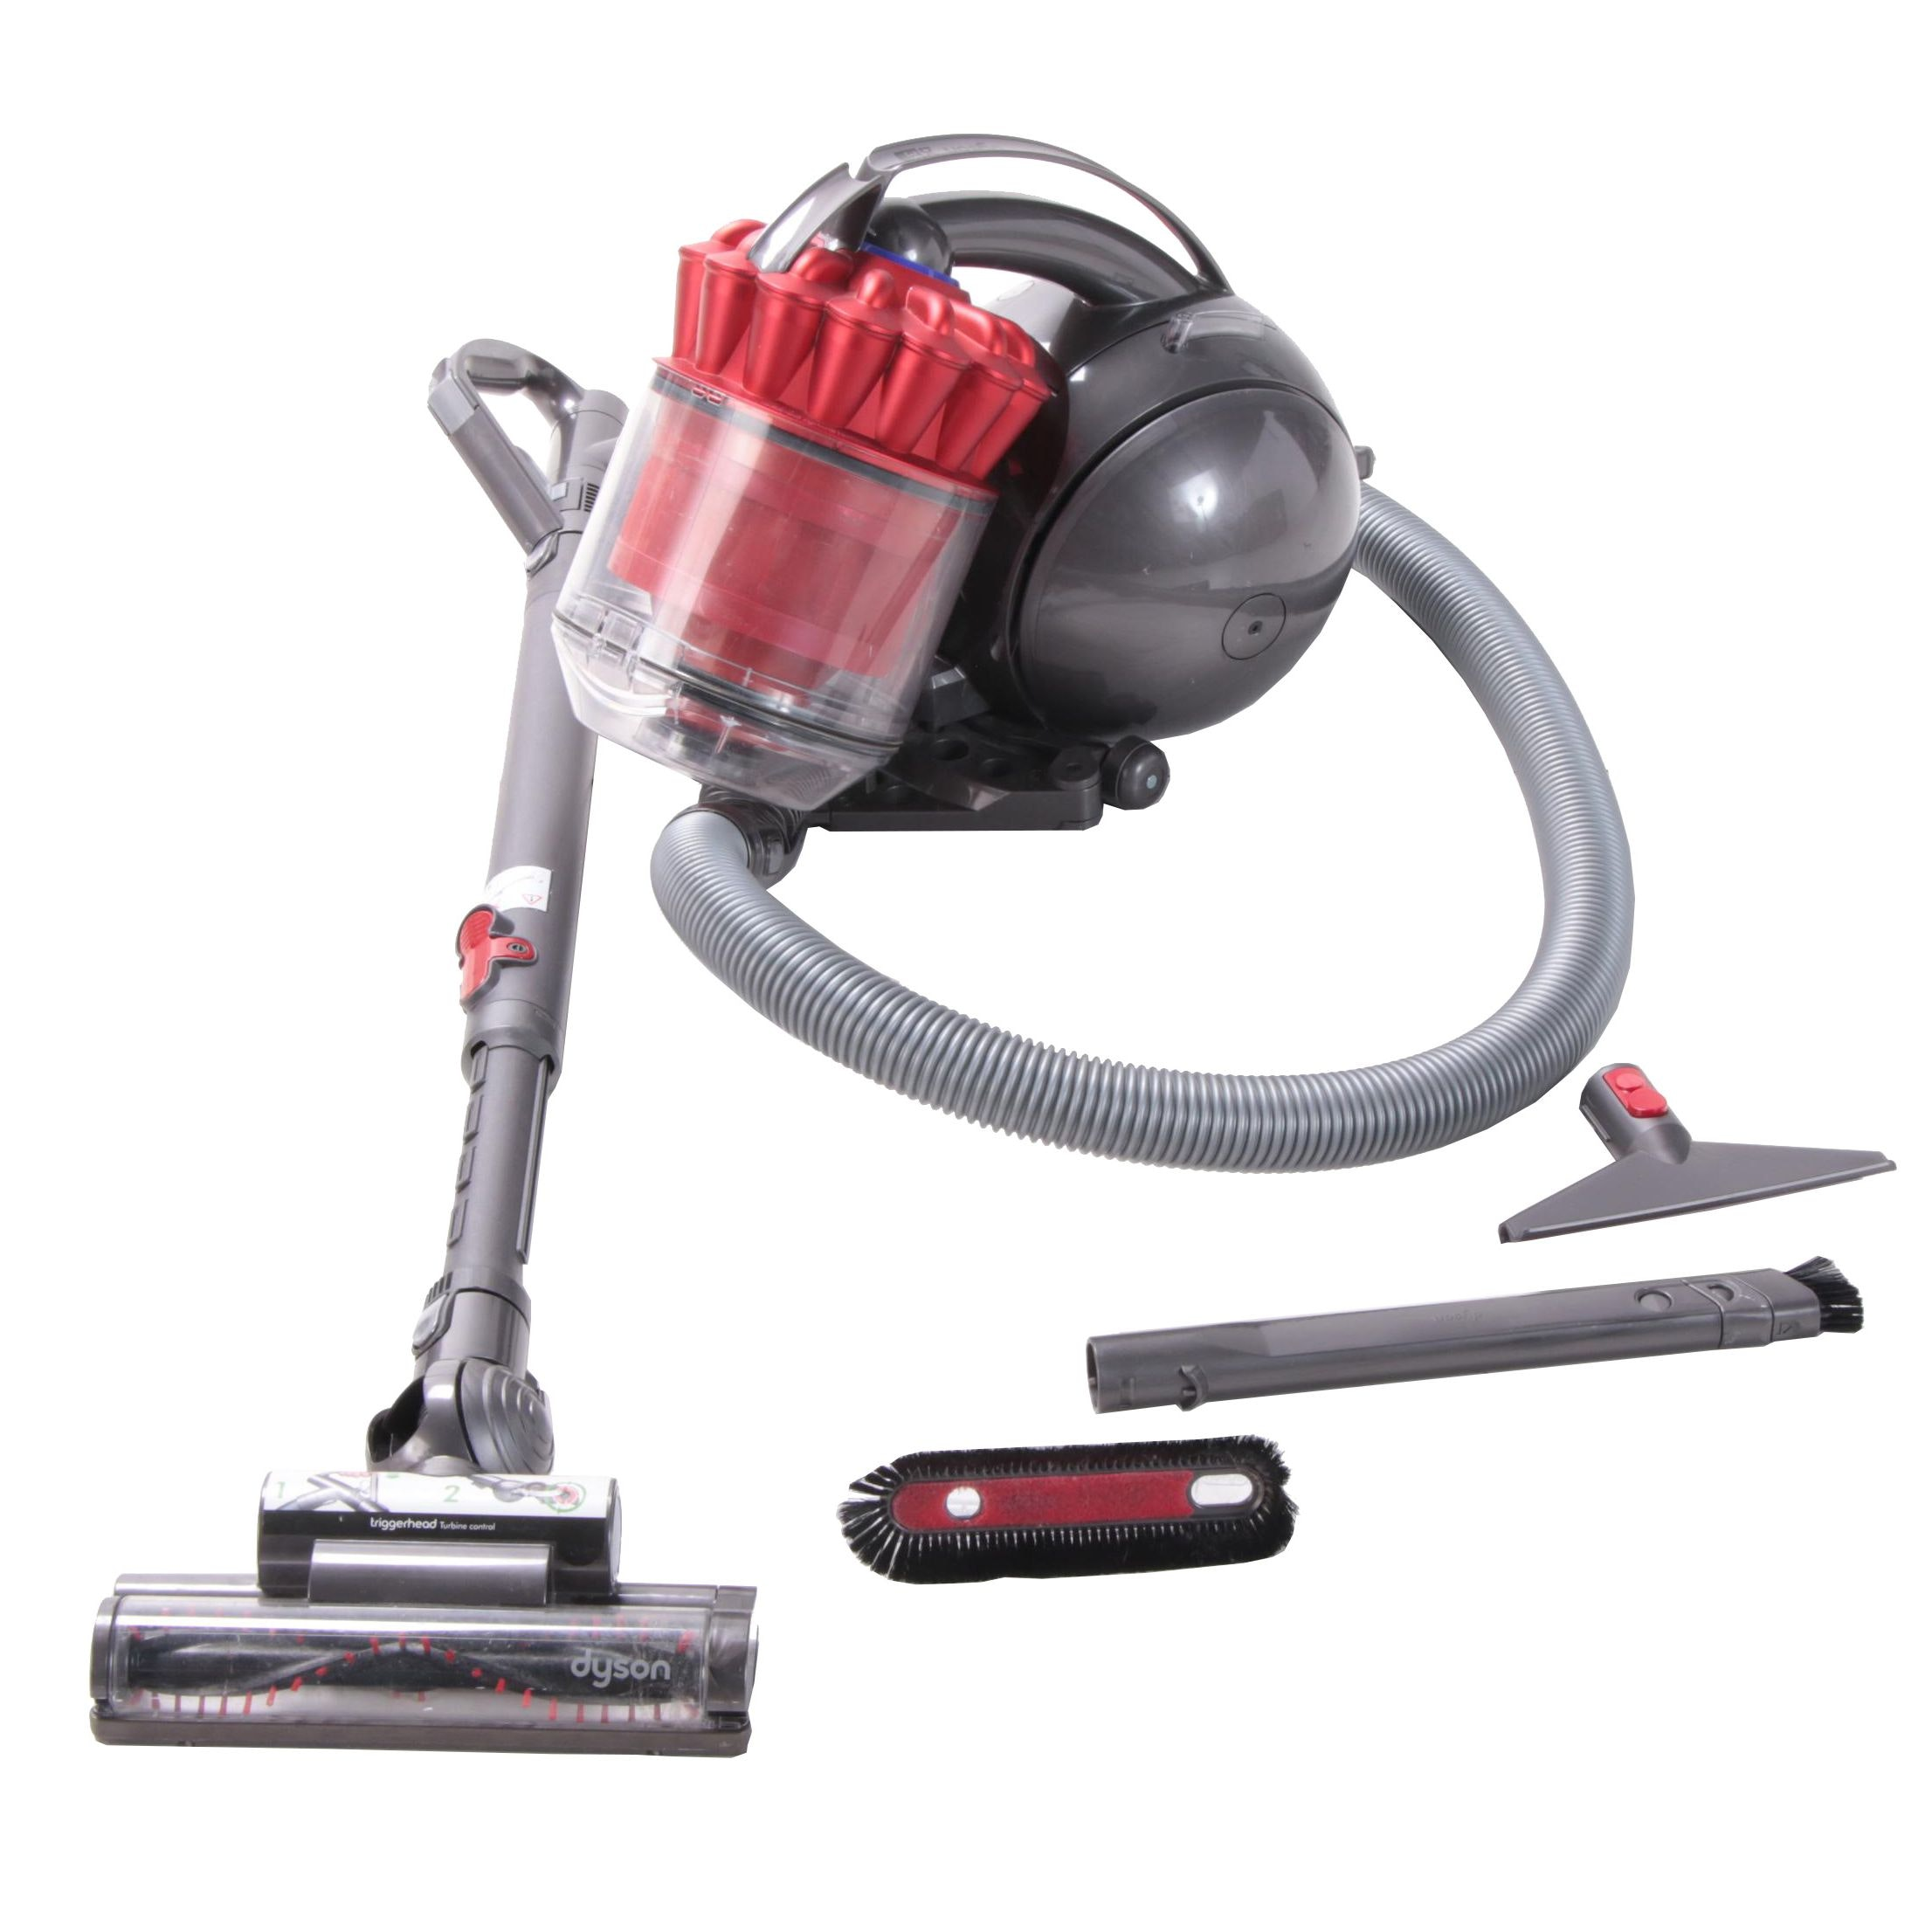 Dyson DC39 Ball Multi Floor Canister Vacuum Cleaner with Attachments